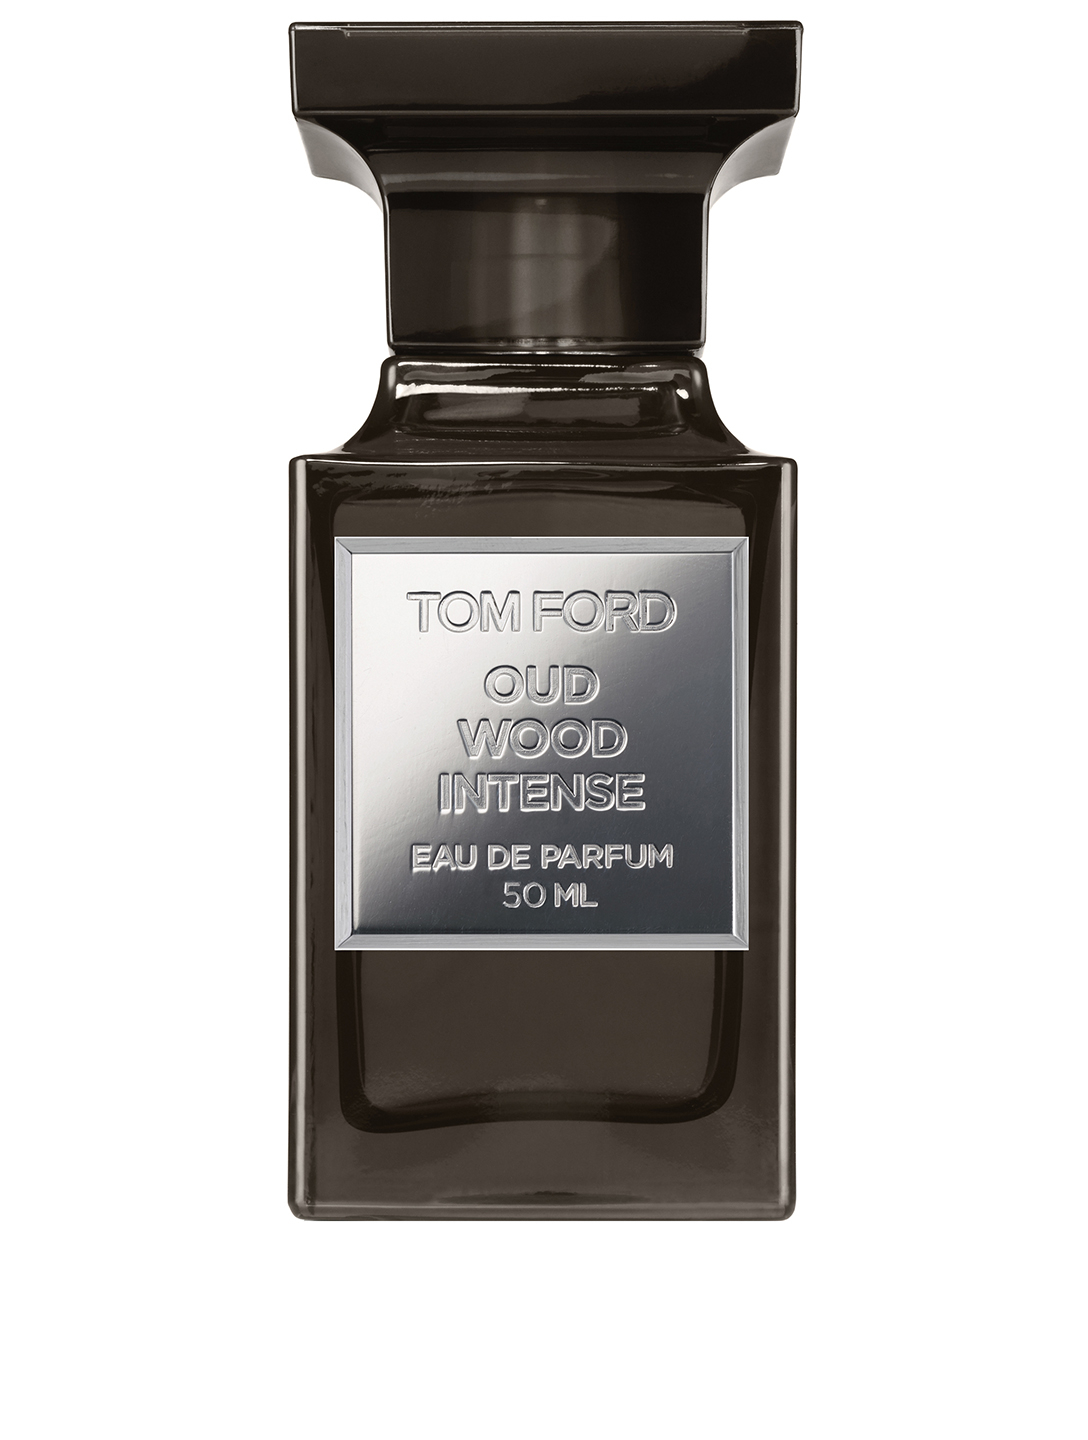 TOM FORD Oud Wood Intense Eau de Parfum Beauty